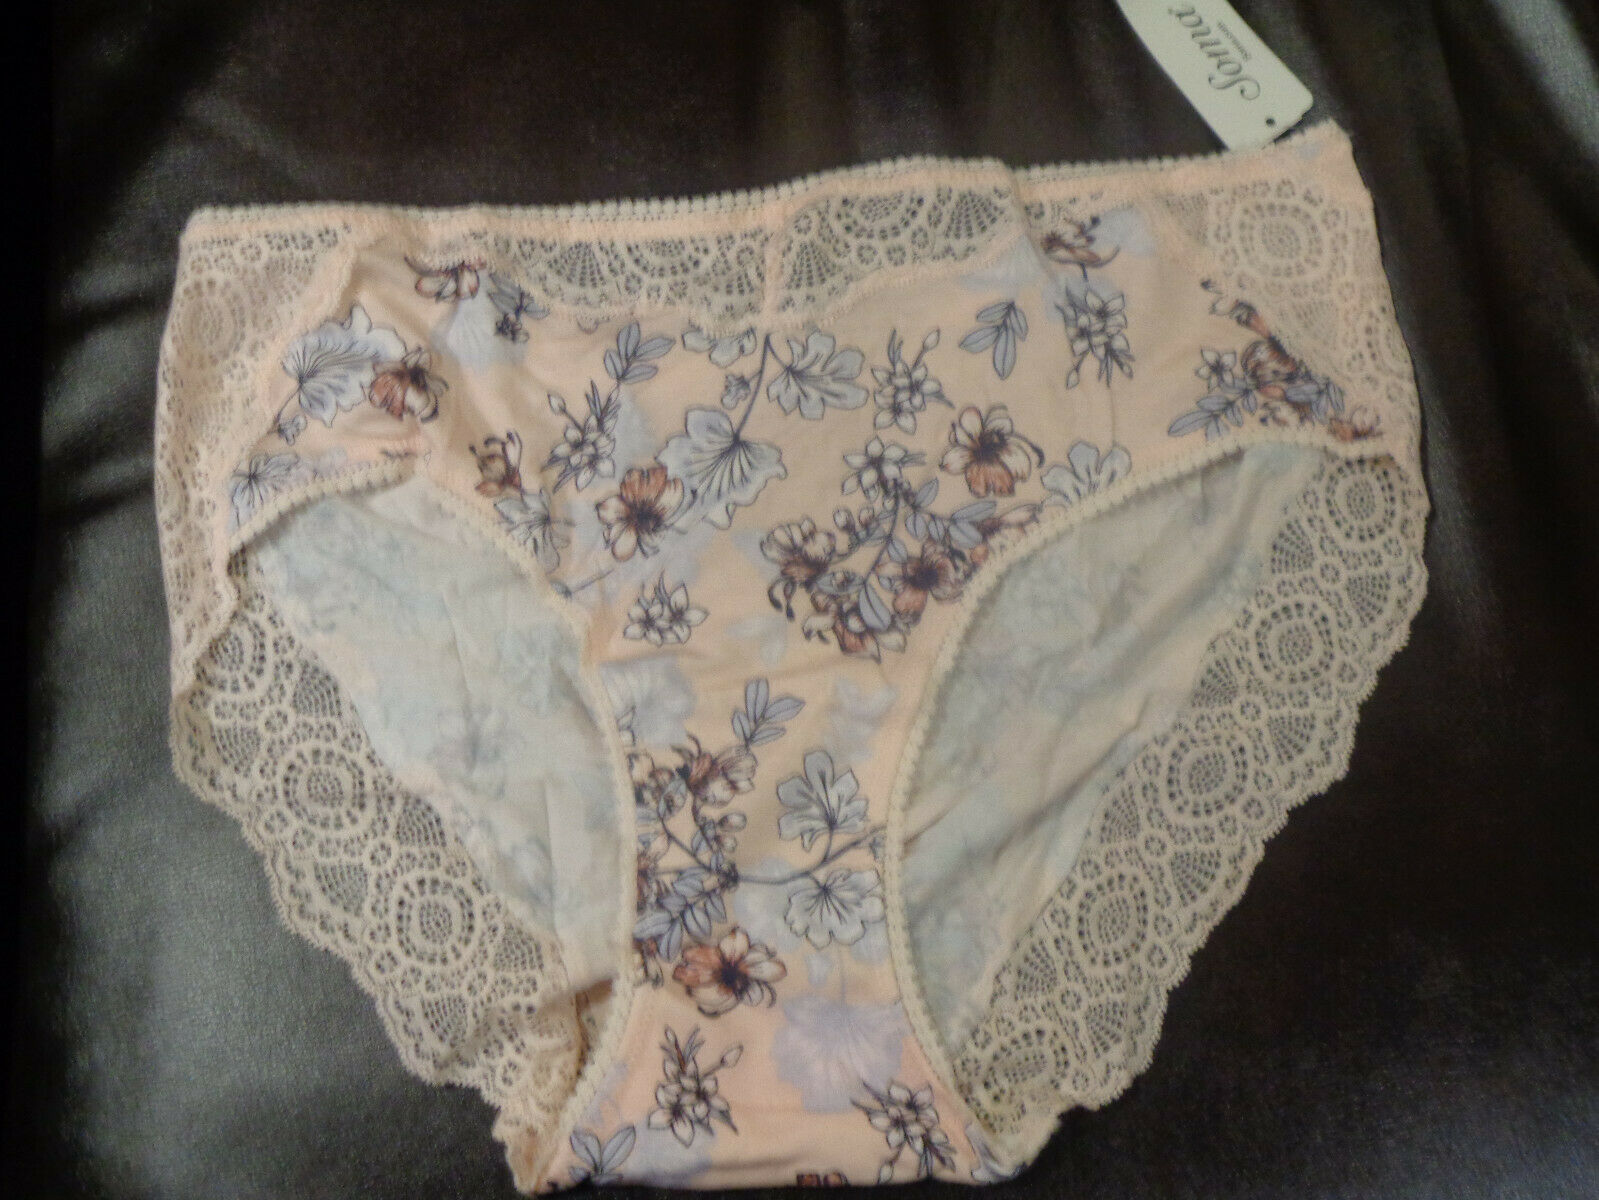 SOMA EMBRACEABLE LACE GEO BOYSHORT PANTIES IN NOVEL GEO OCEAN AIR BLUE NEW